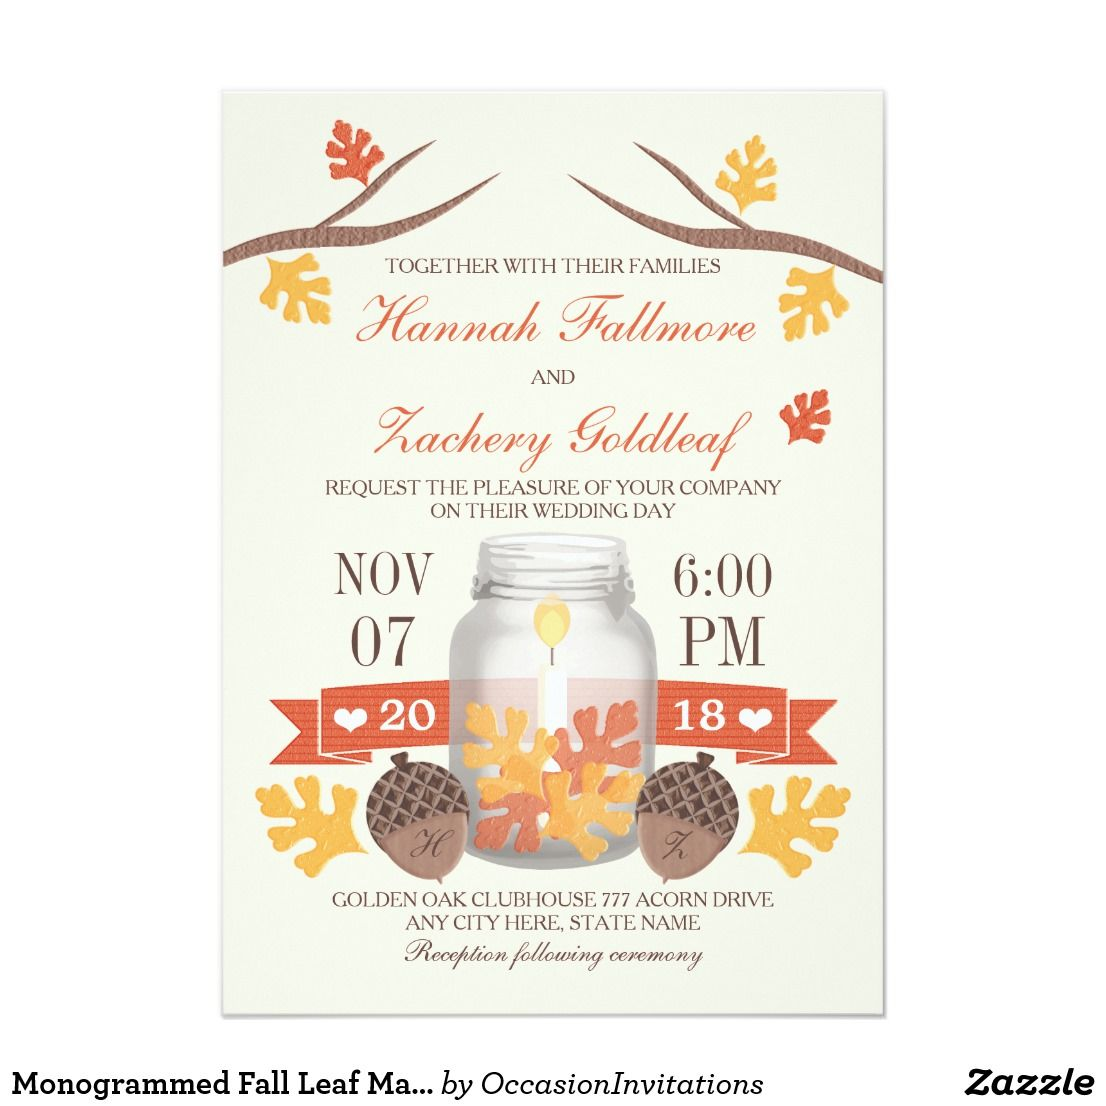 Monogrammed Fall Leaf Mason Jar Wedding Card A beautiful fall themed ...